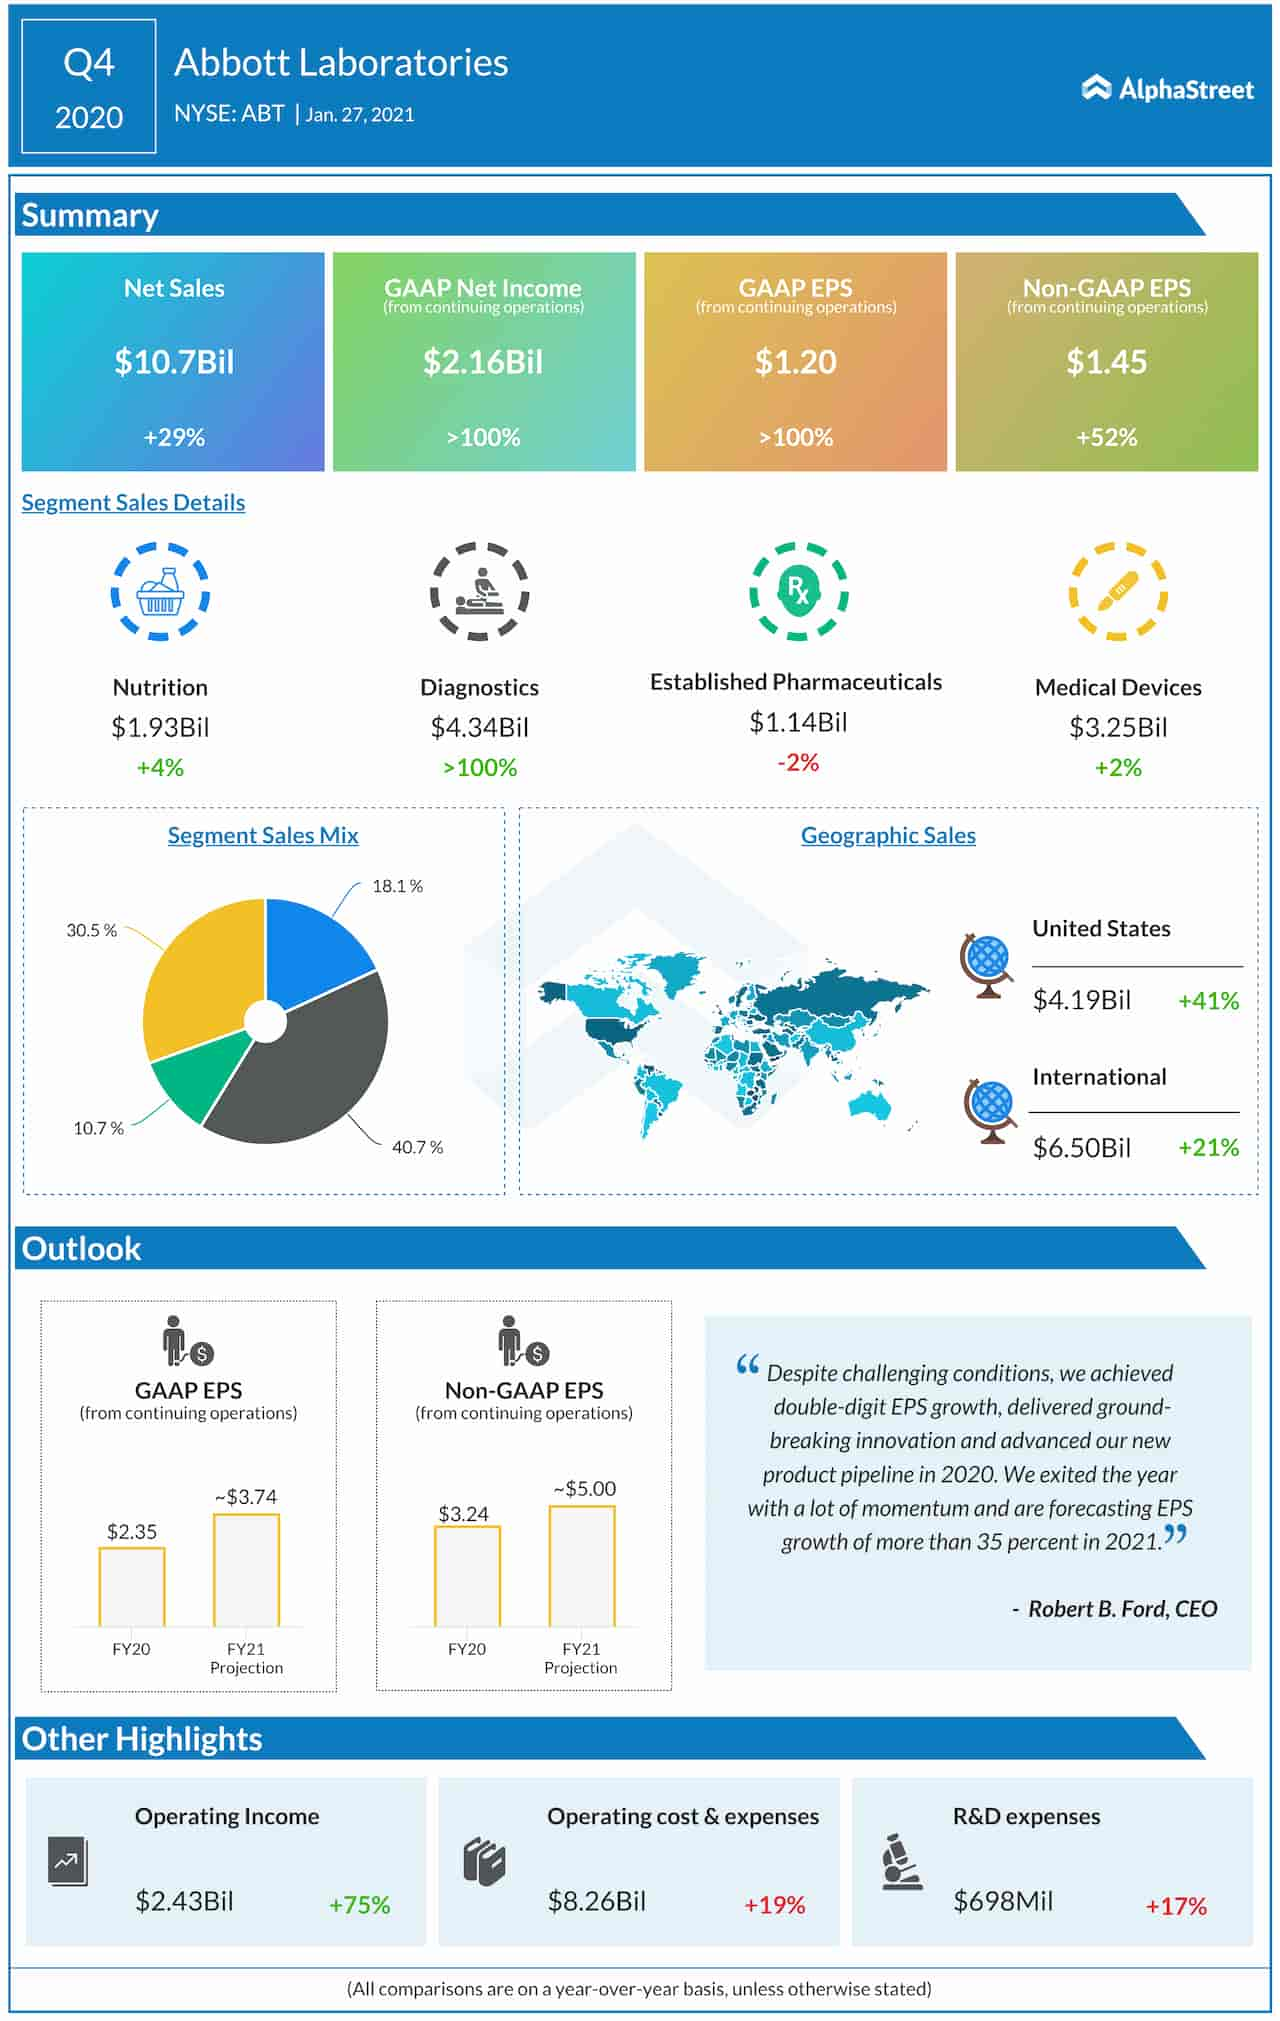 Abbott Laboratories Q4 2020 earnings infographic